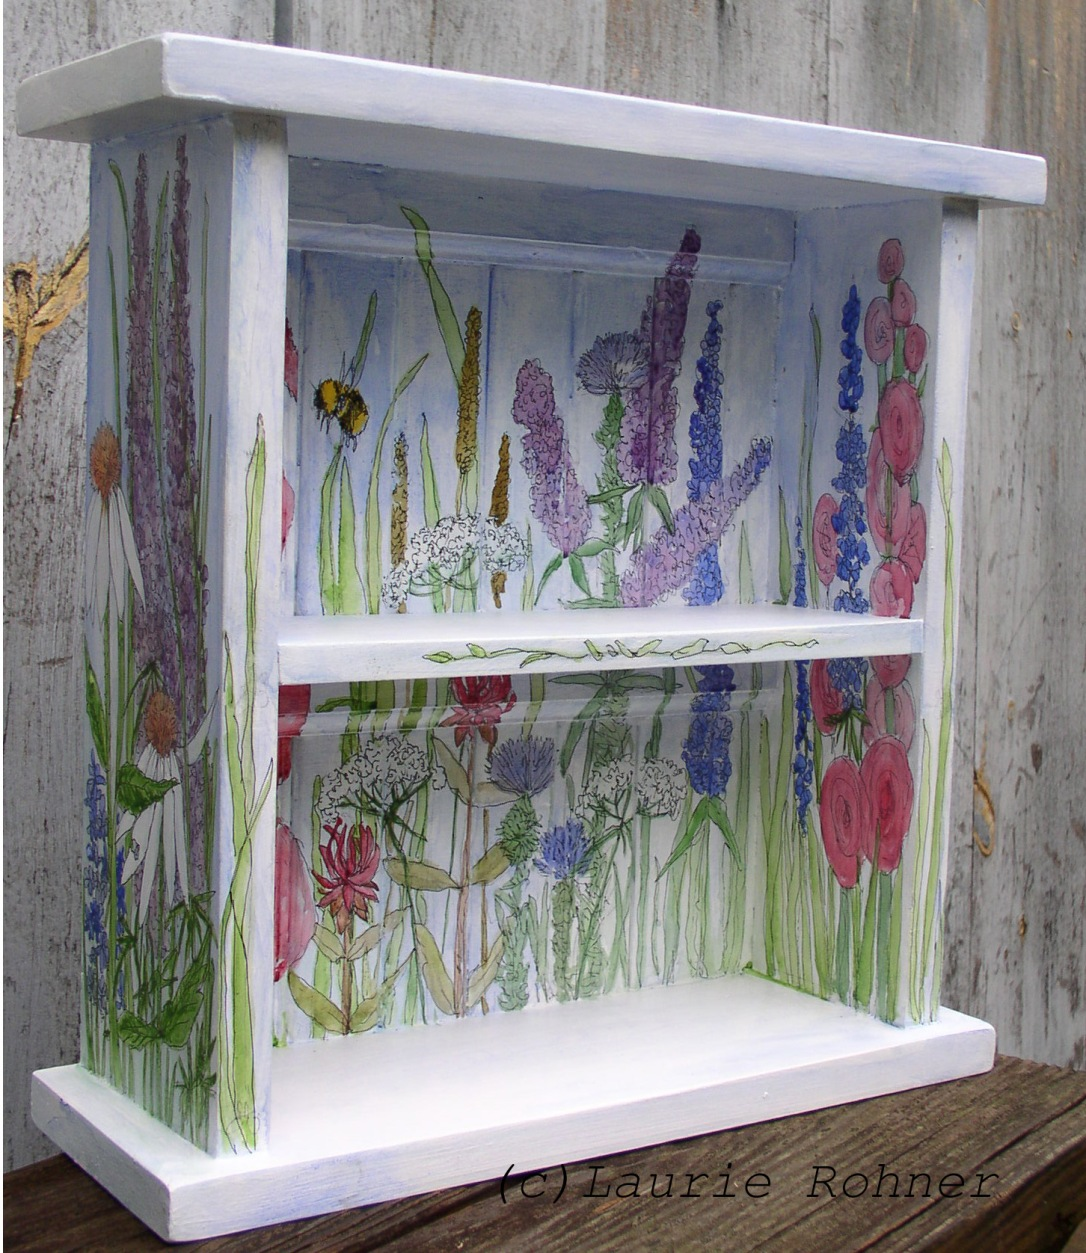 Shop for hand painted furniture at Between The Weeds Etsy